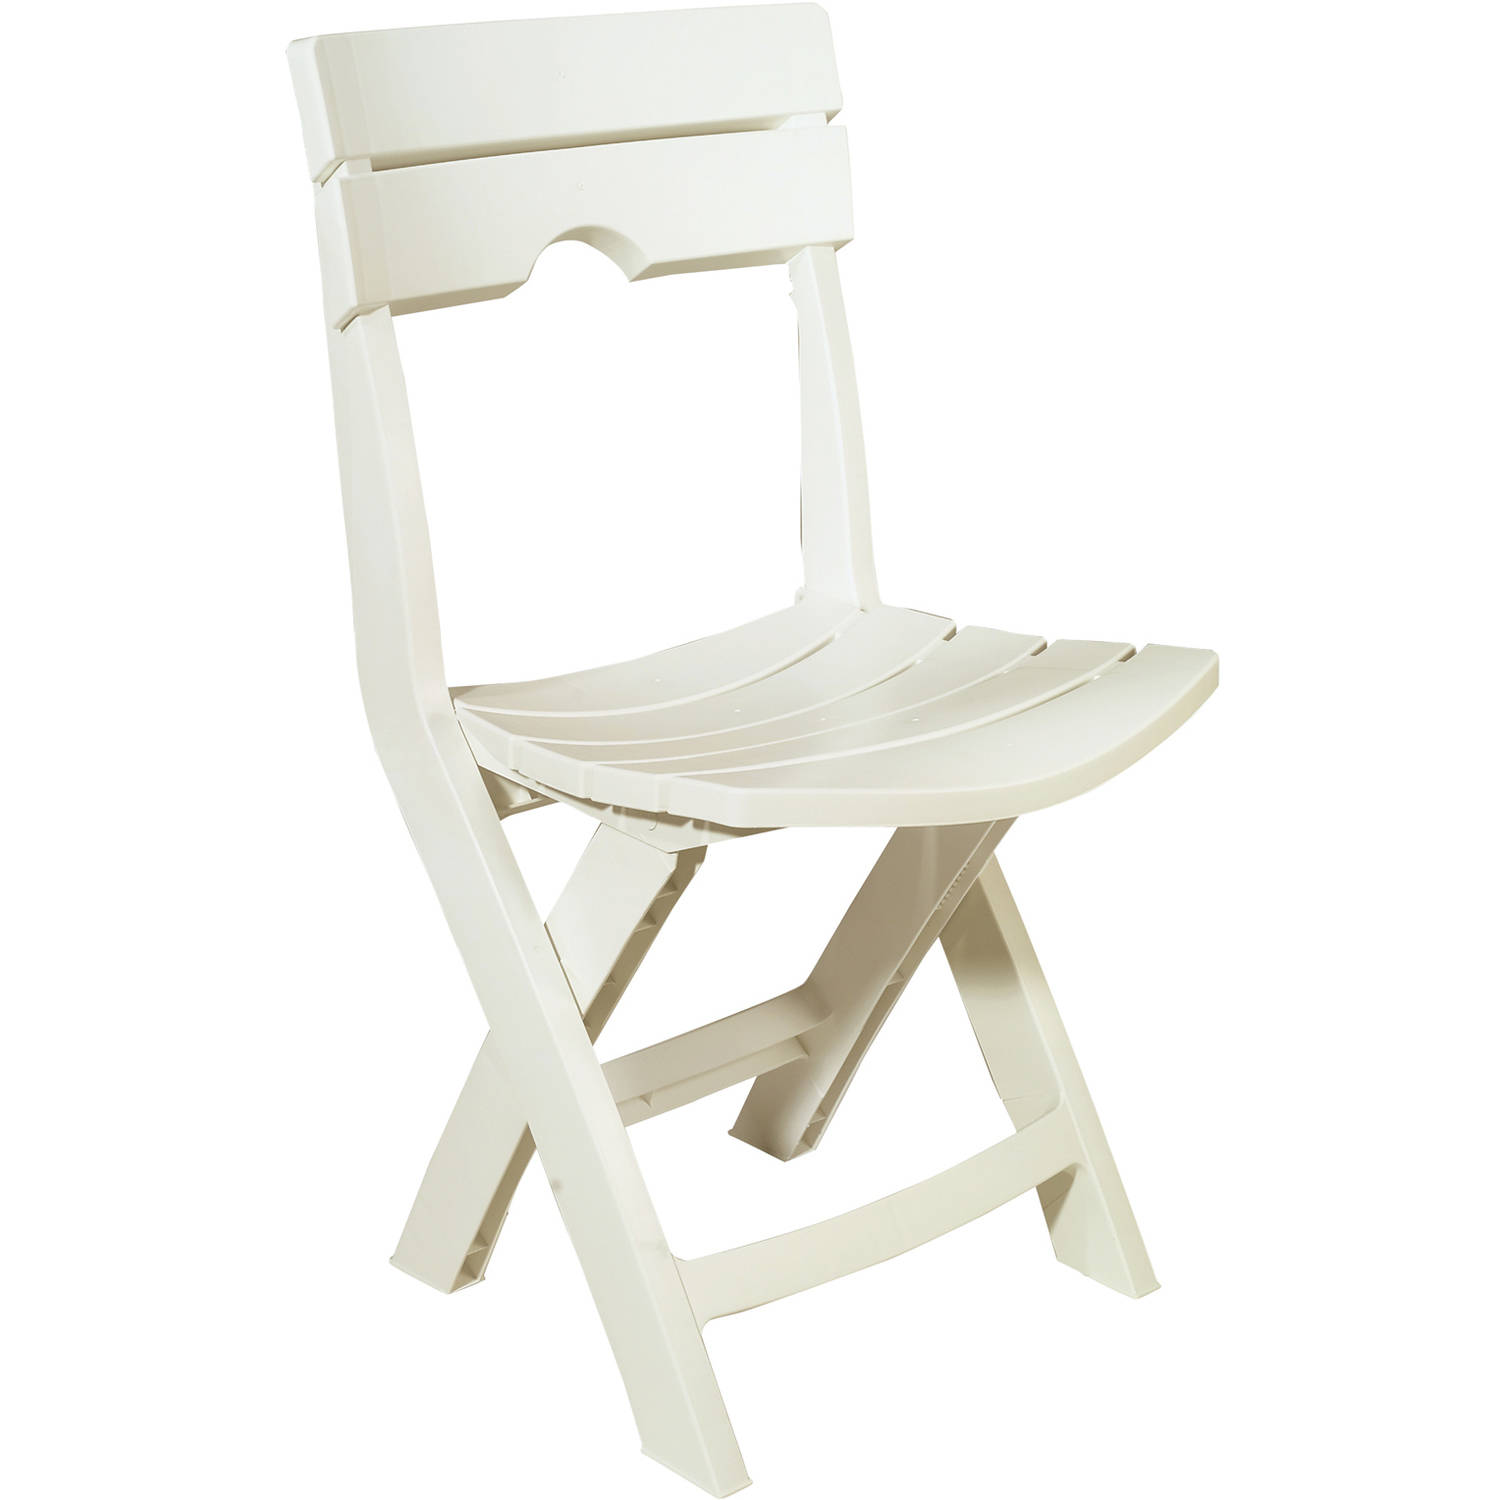 Adams Manufacturing Quik Fold Chair, White